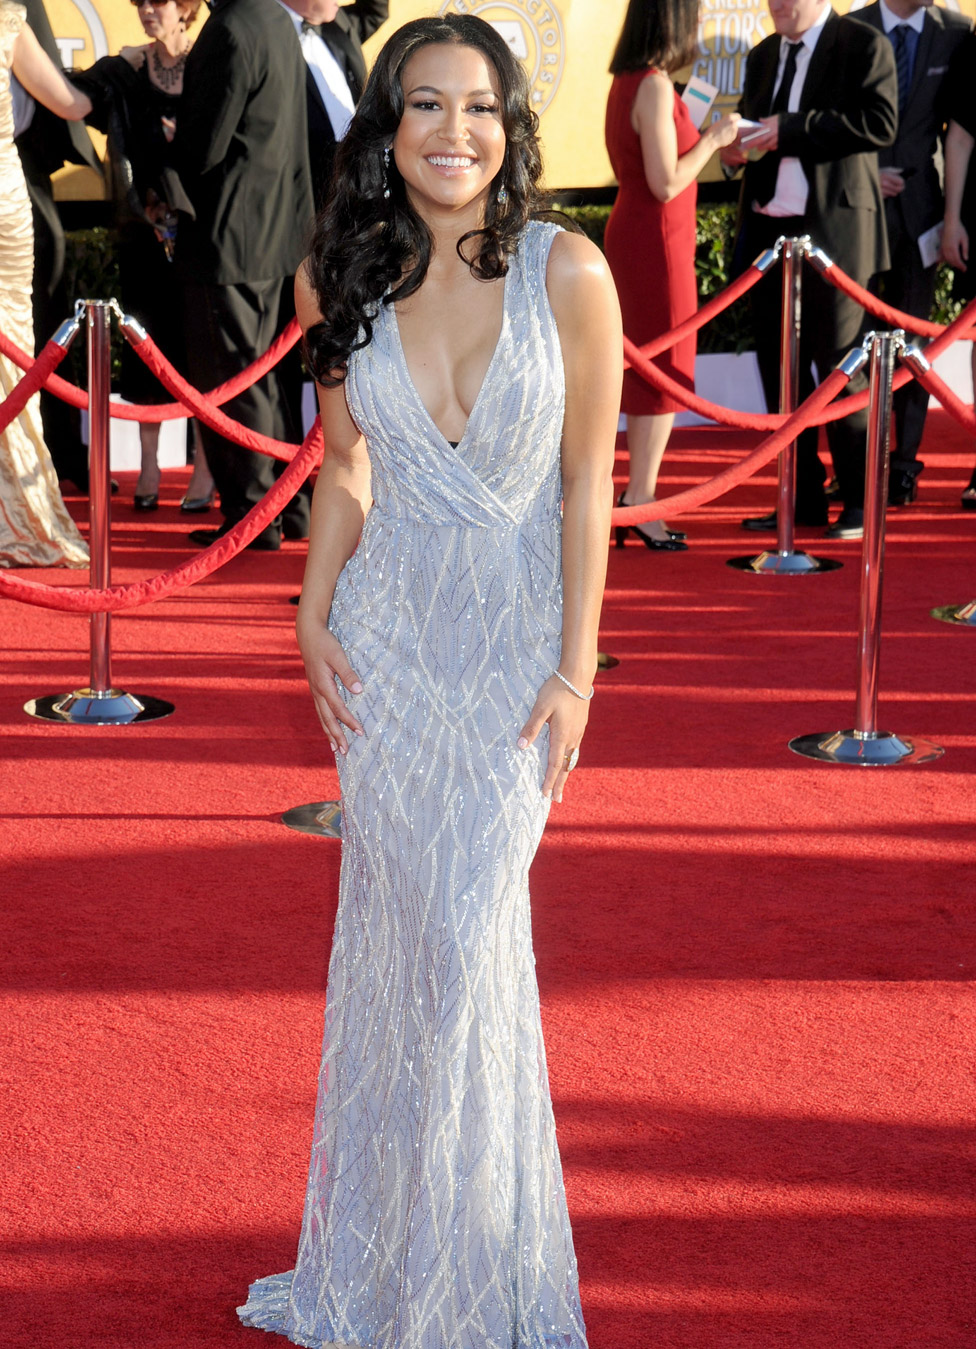 Naya Rivera en los premios Screen Actors Guild de 2012